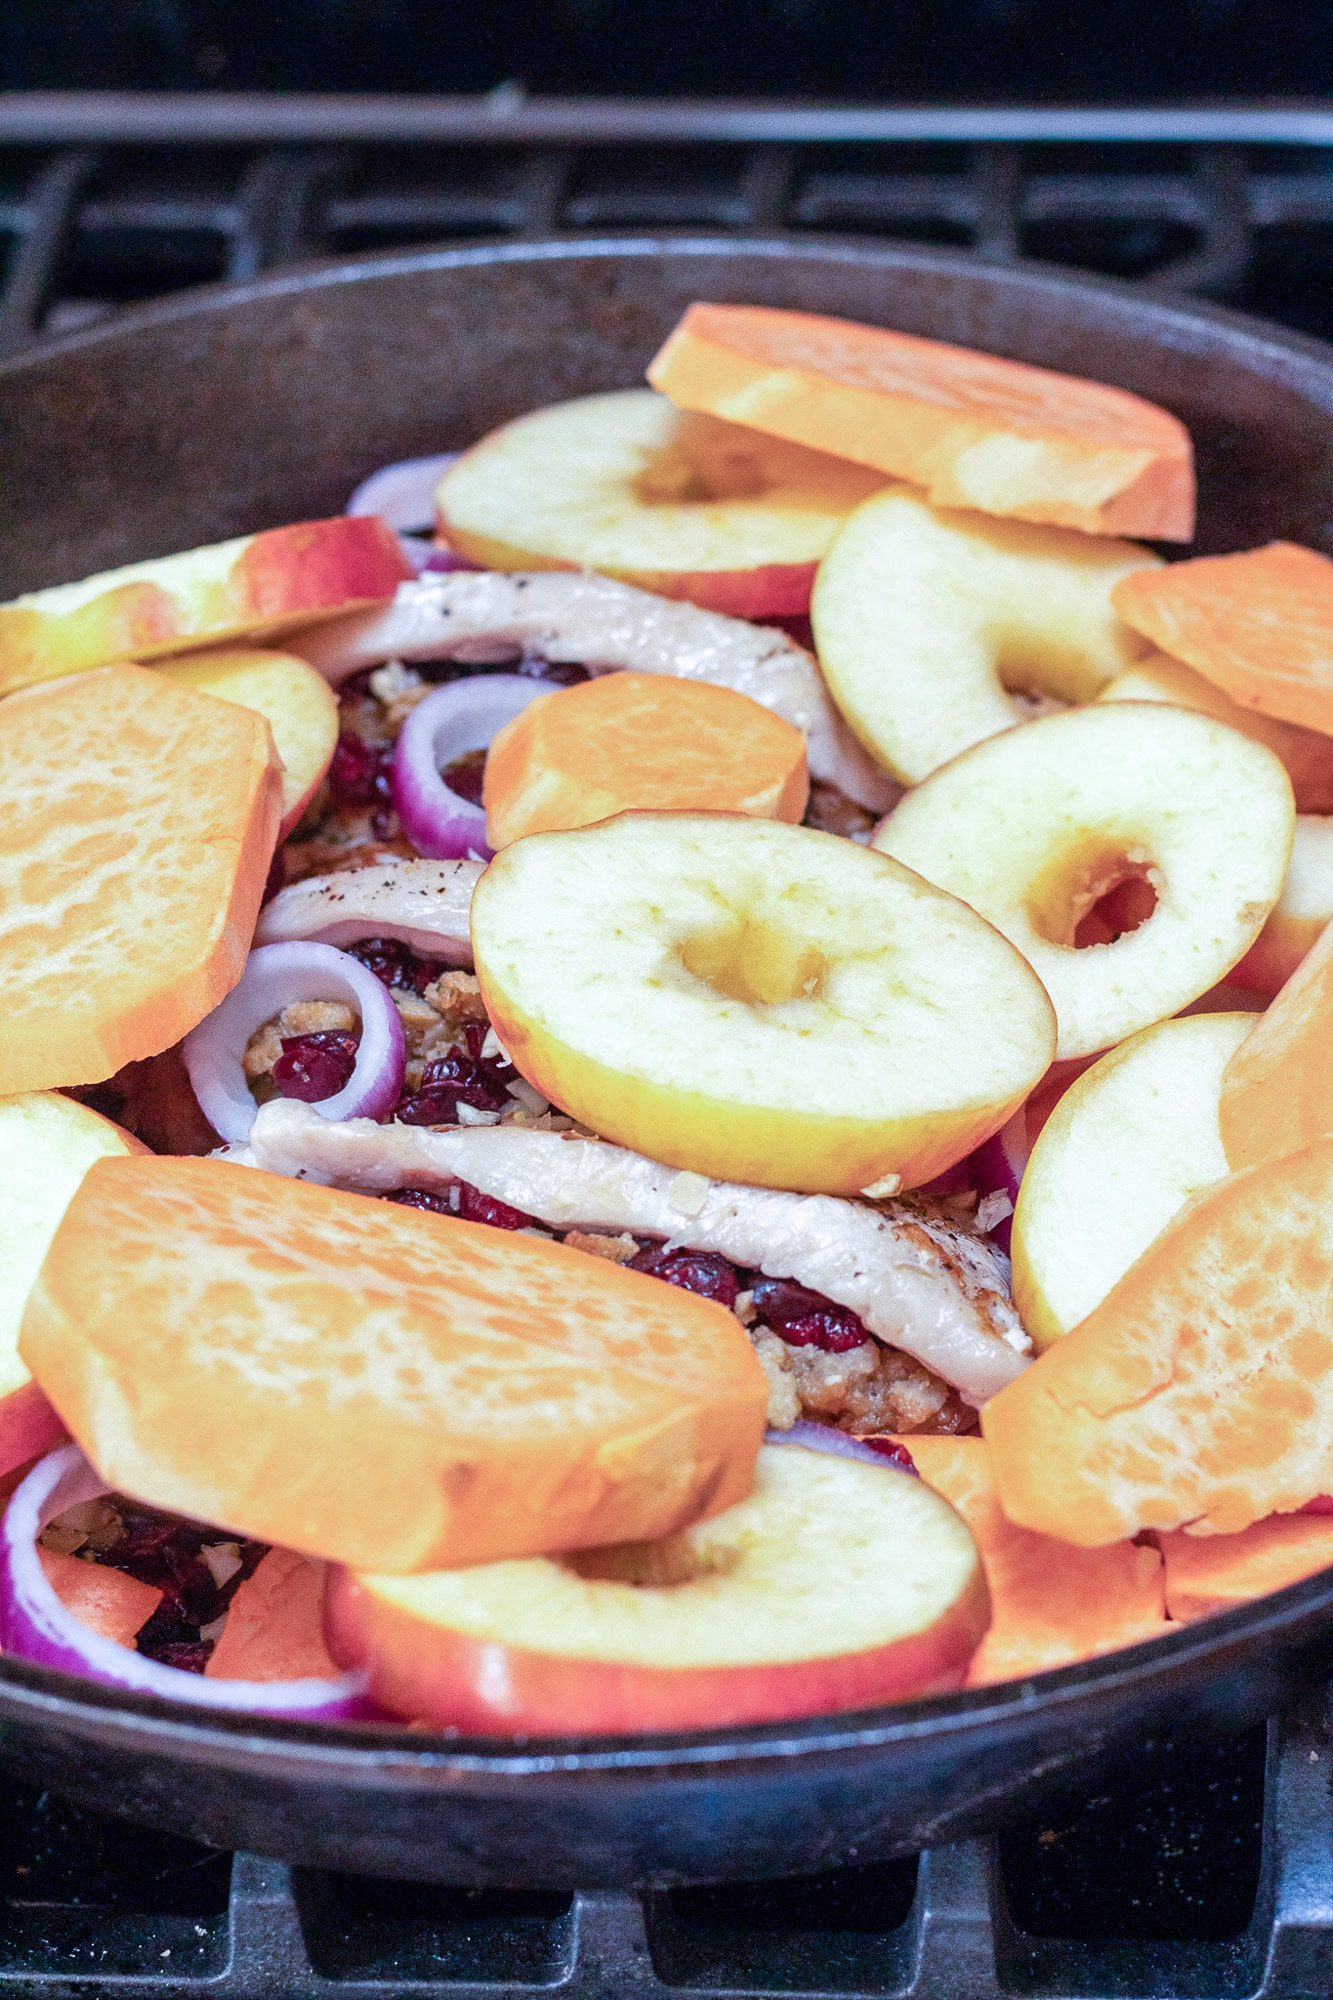 Sliced apples and onions in skillet